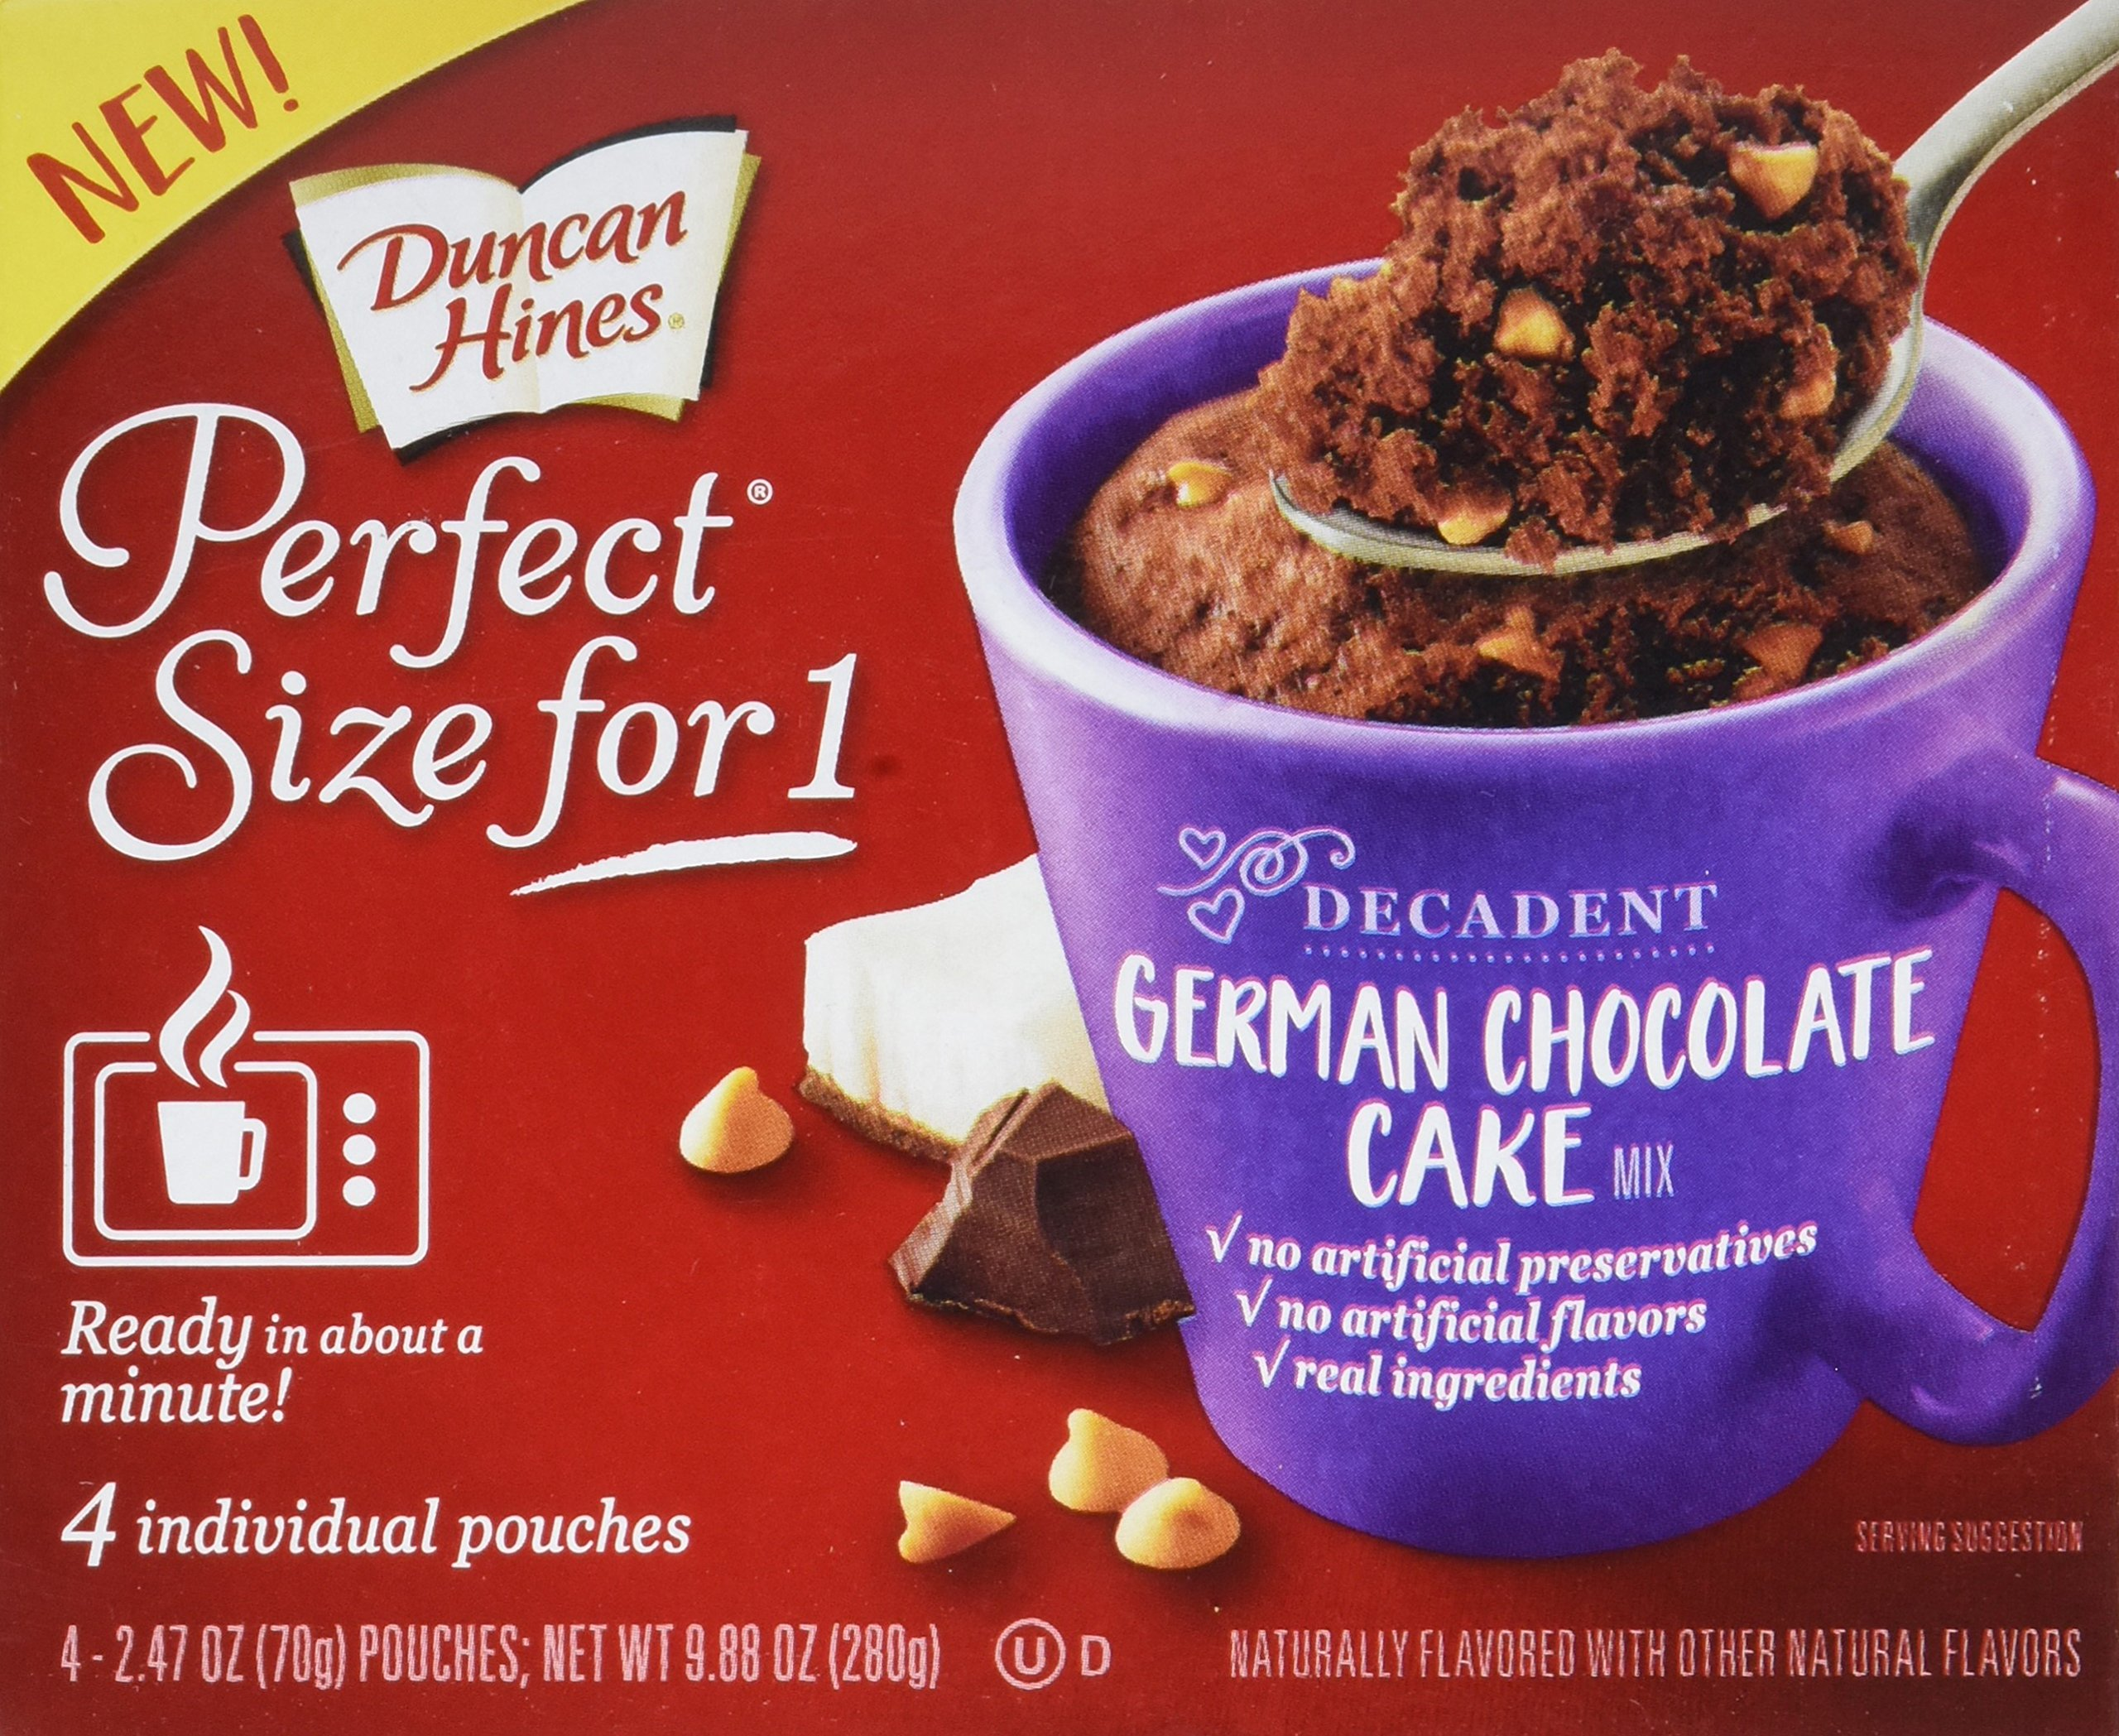 Duncan Hines Perfect Size for 1 Mug Cake Mix, Ready in About a Minute, German Chocolate Cake, 4 individual pouches